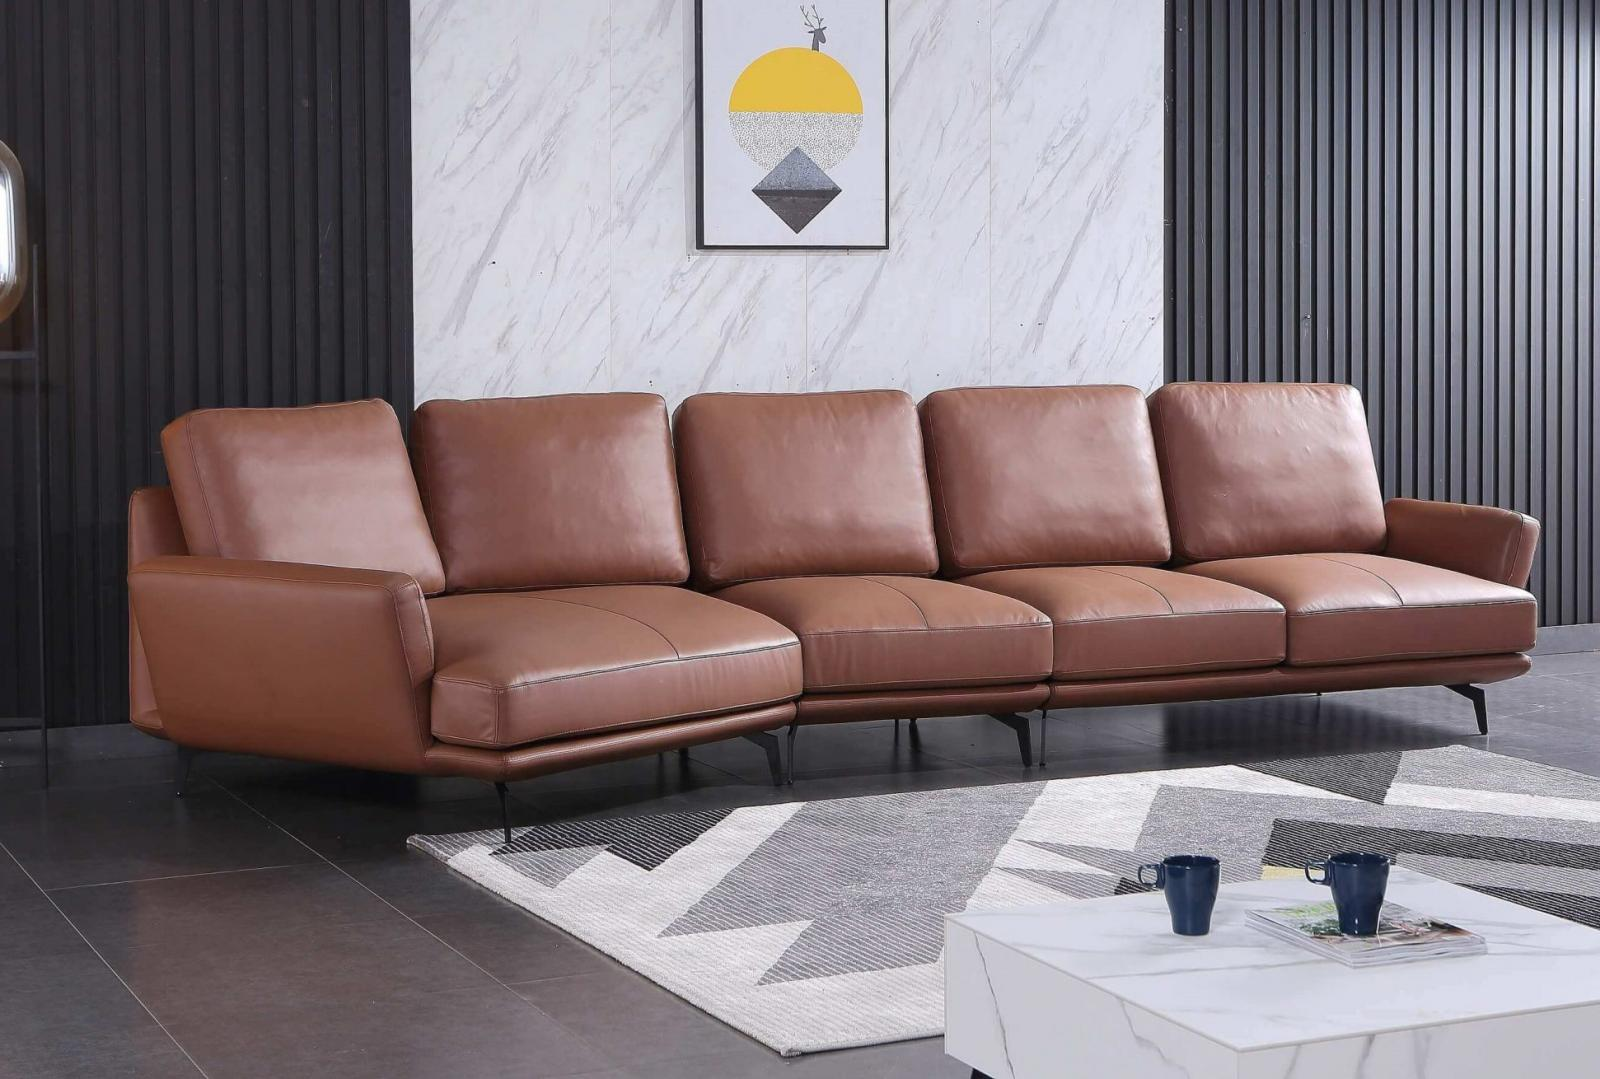 Modern  Vintage Brown Wood  Genuine leather  Solid Hardwood and Italian Leather Sectional Sofa EUROPEAN FURNITURE EF-54432L-3LHC